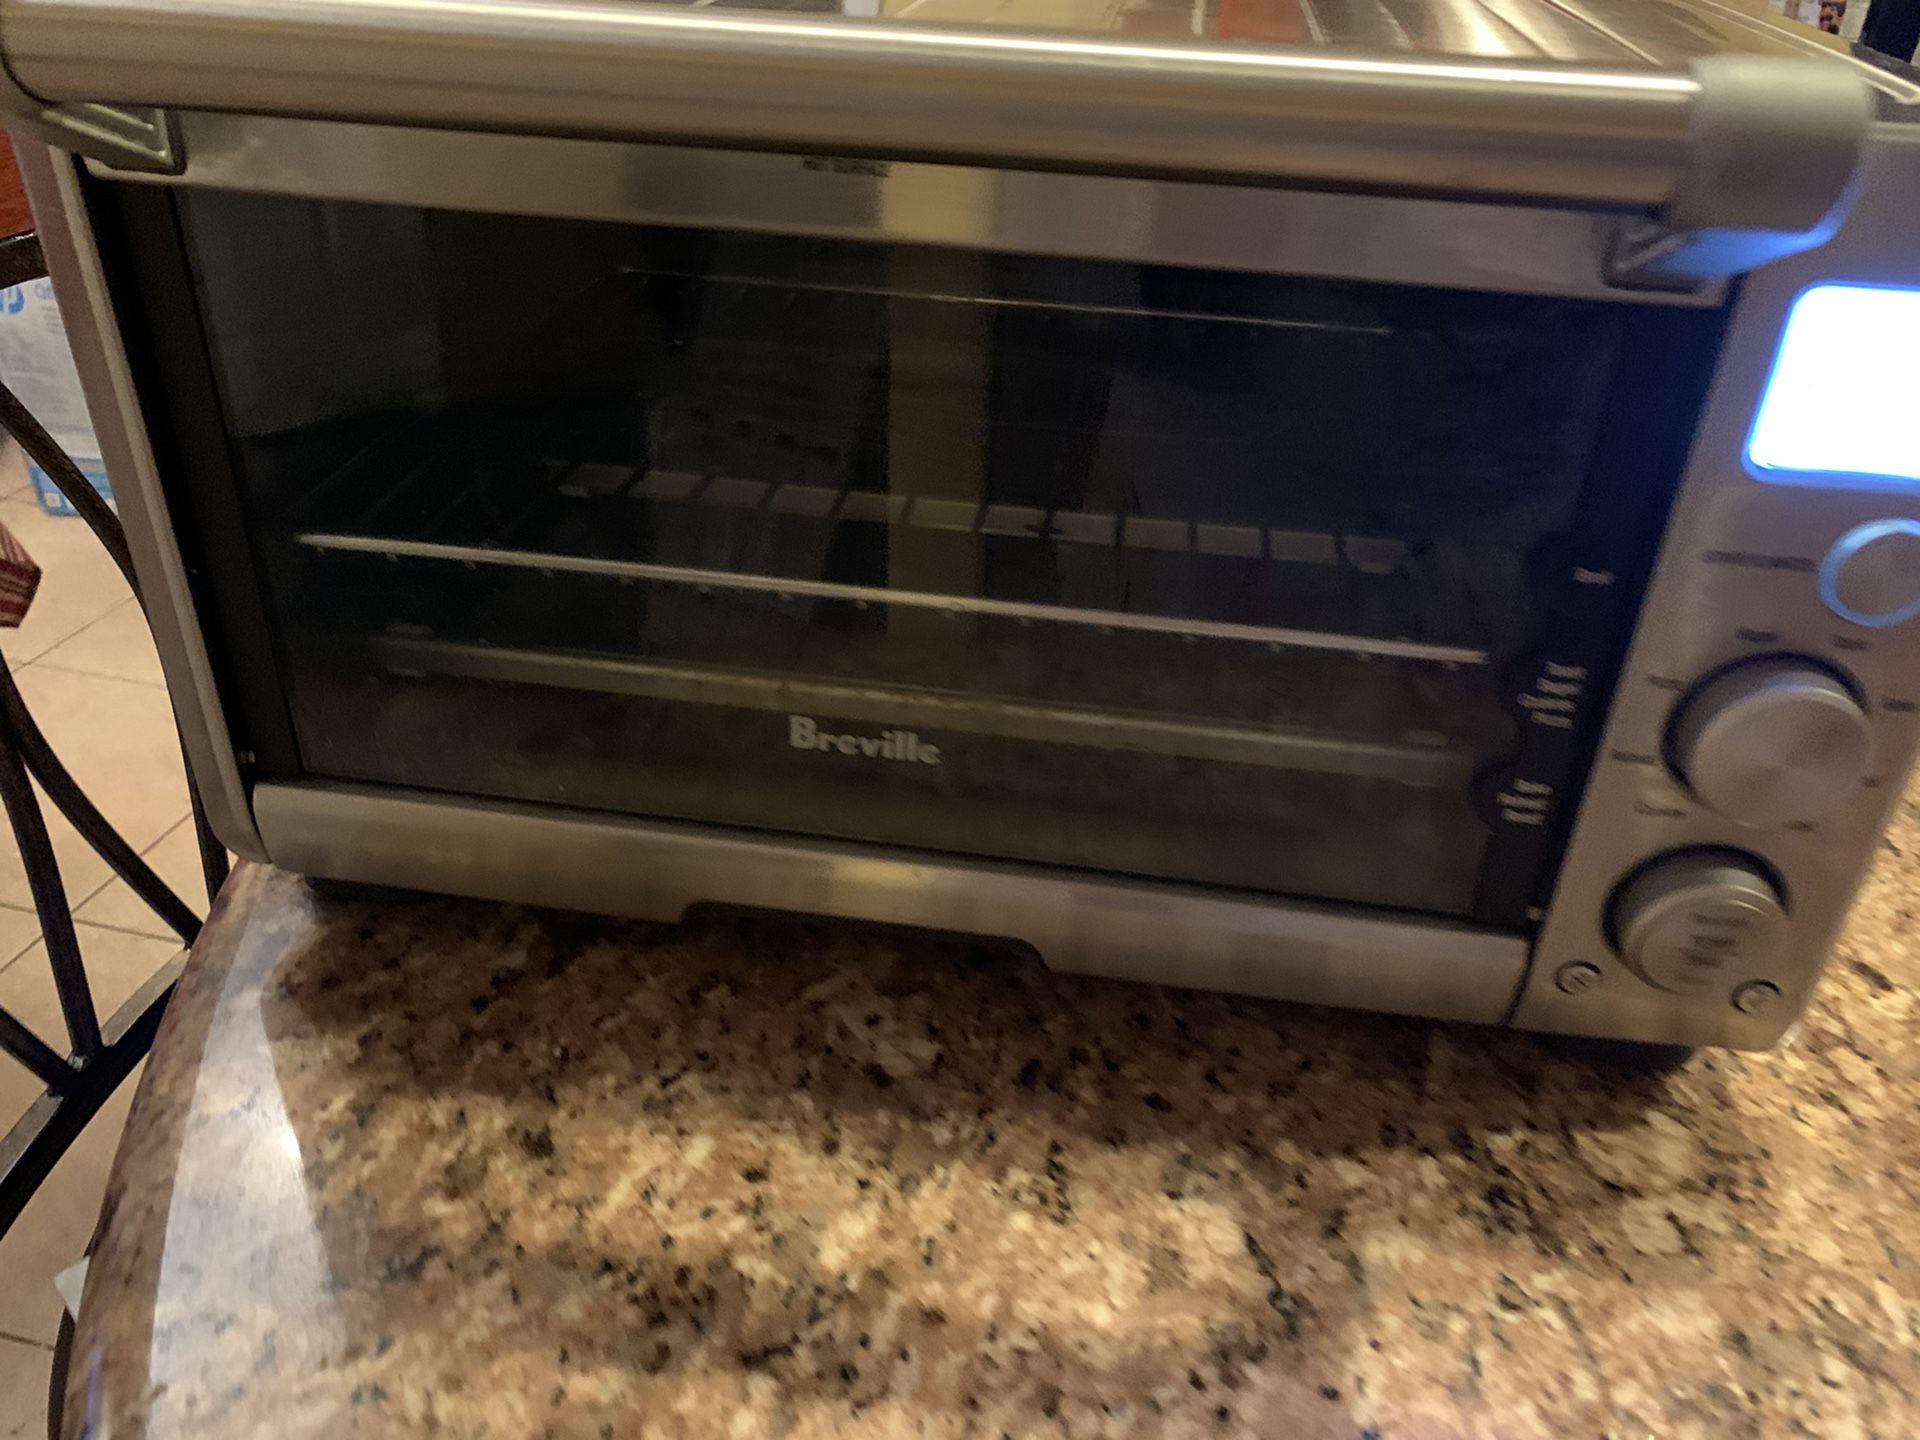 Breville - Compact Smart Oven Toaster